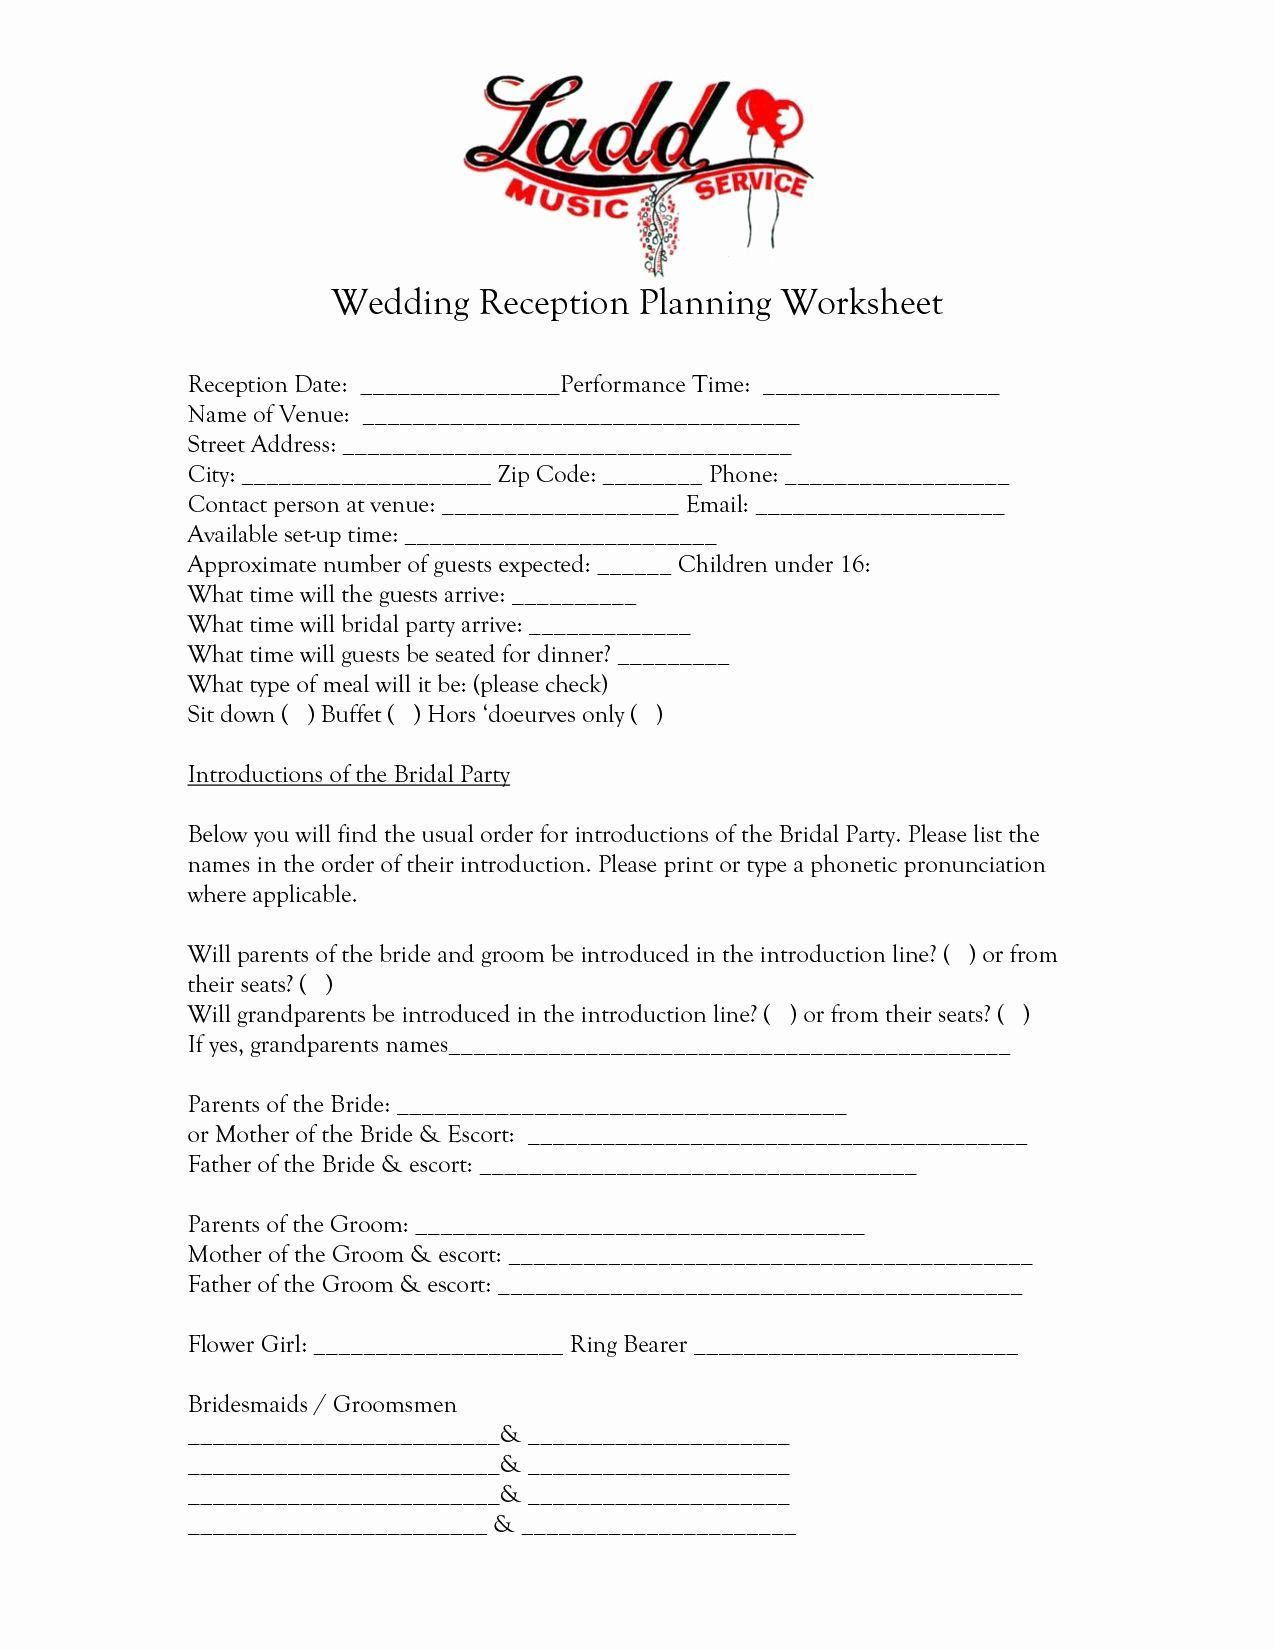 Wedding Video Contract Template New Pin By Yesidomariage On La